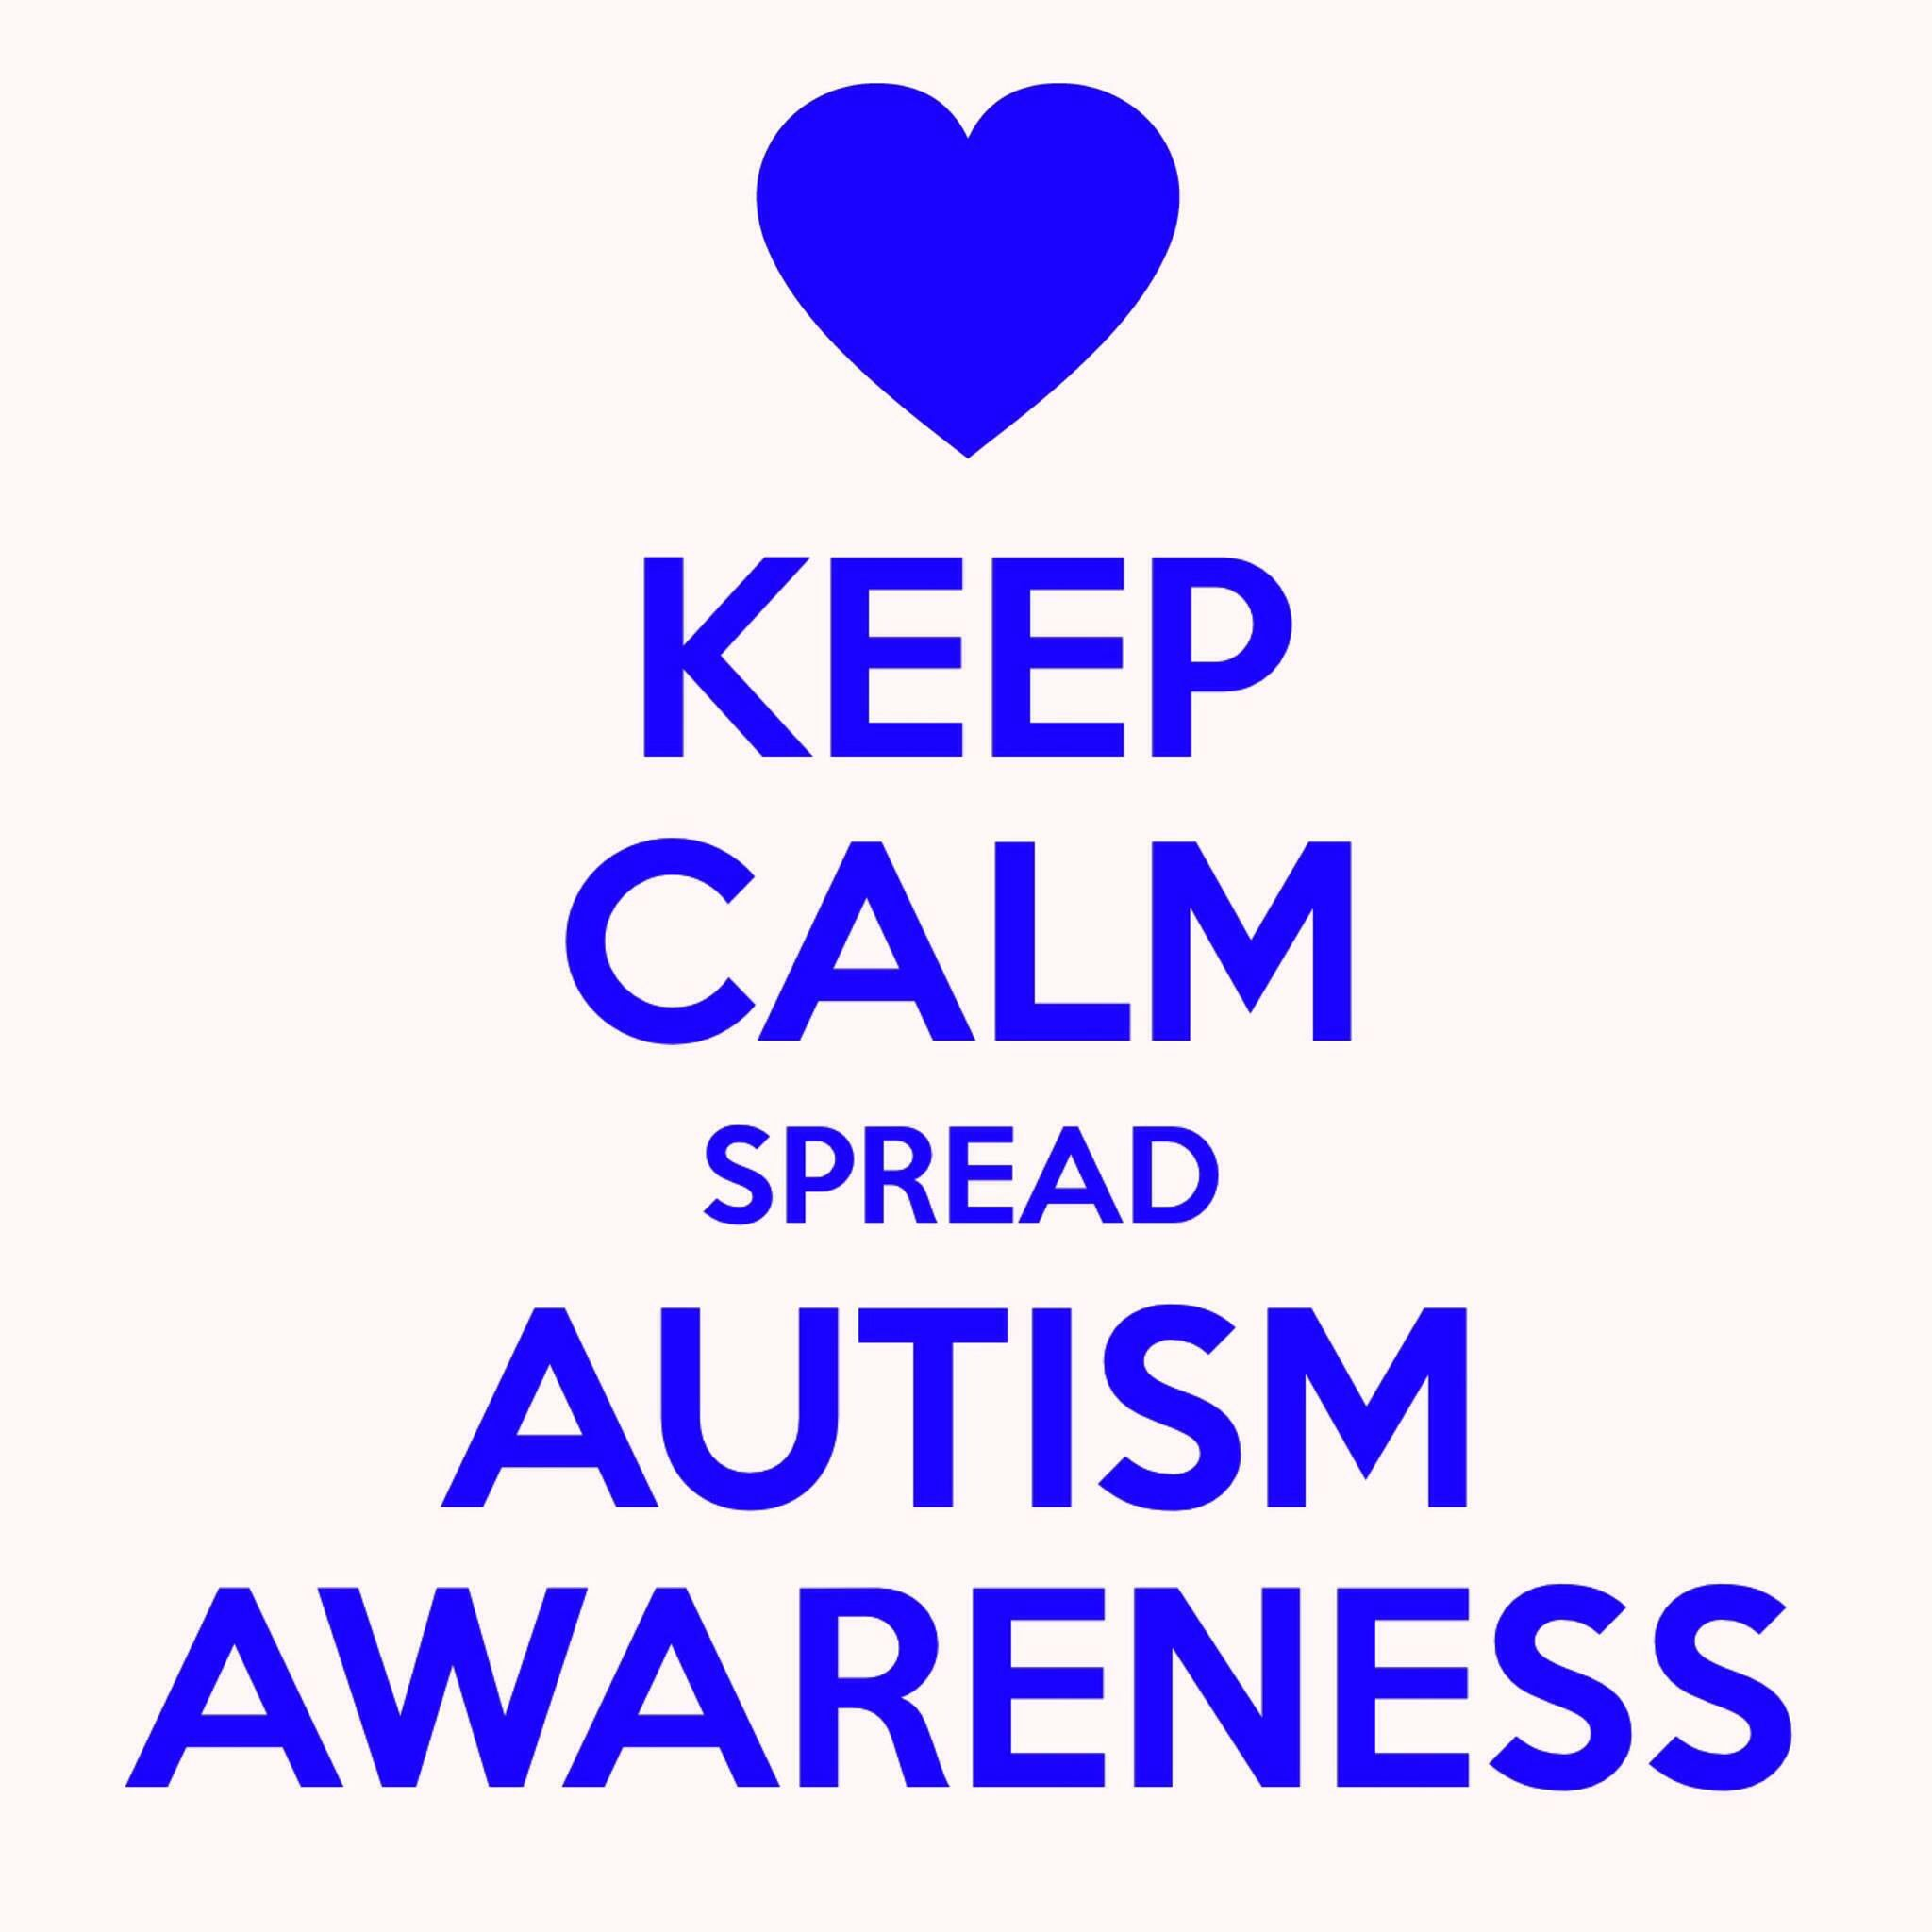 Autism Awareness Autism awareness Pinterest